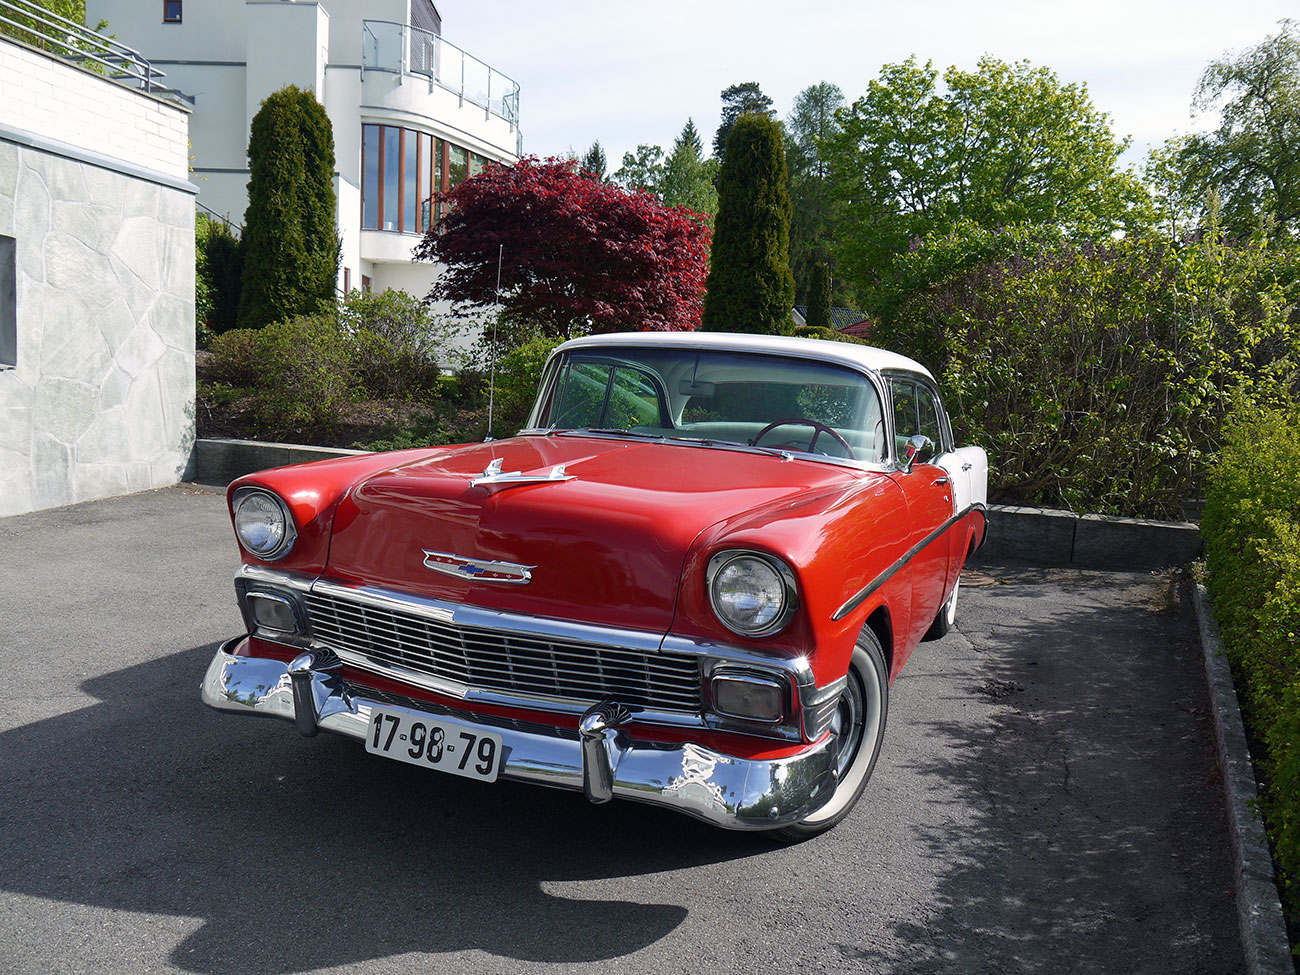 1956 Chevrolet two ten 210 bel air hardtop